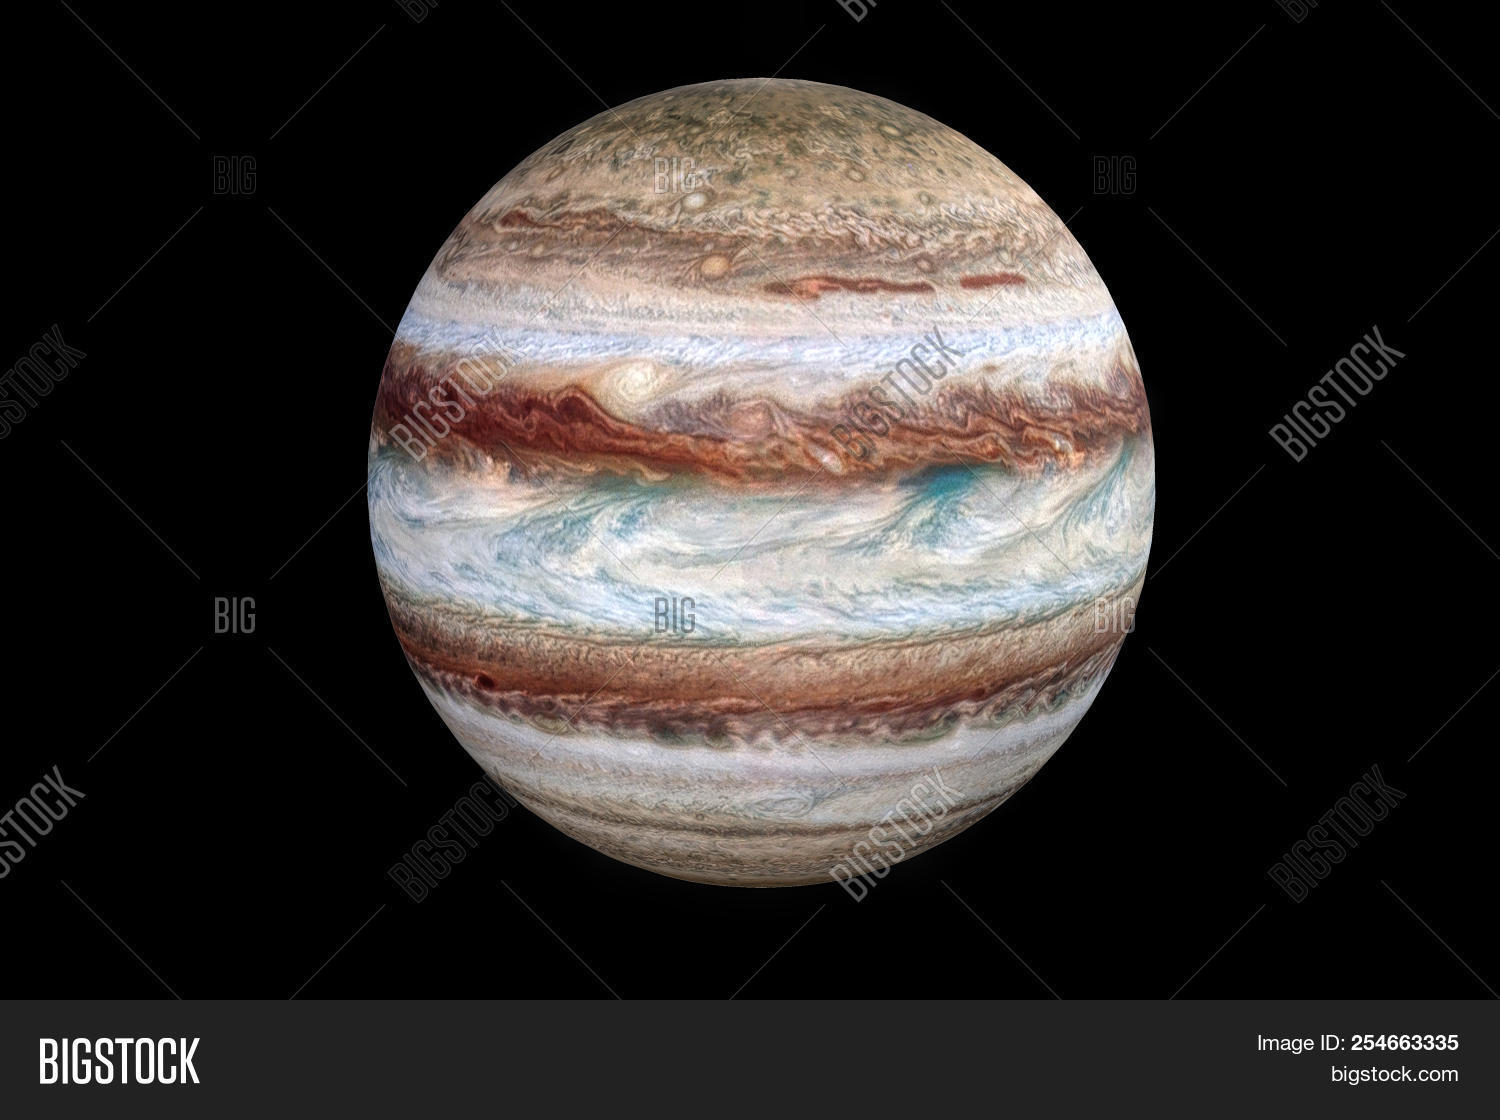 3d,Jupiter,art,astronaut,astronomy,background,beautiful,cosmos,deep,earth,exploration,fantasy,galaxy,gas,giant,image,isolated,milky,moon,orbit,outer,planet,rendering,satellite,science,sky,solar,space,star,system,telescope,universe,way,white